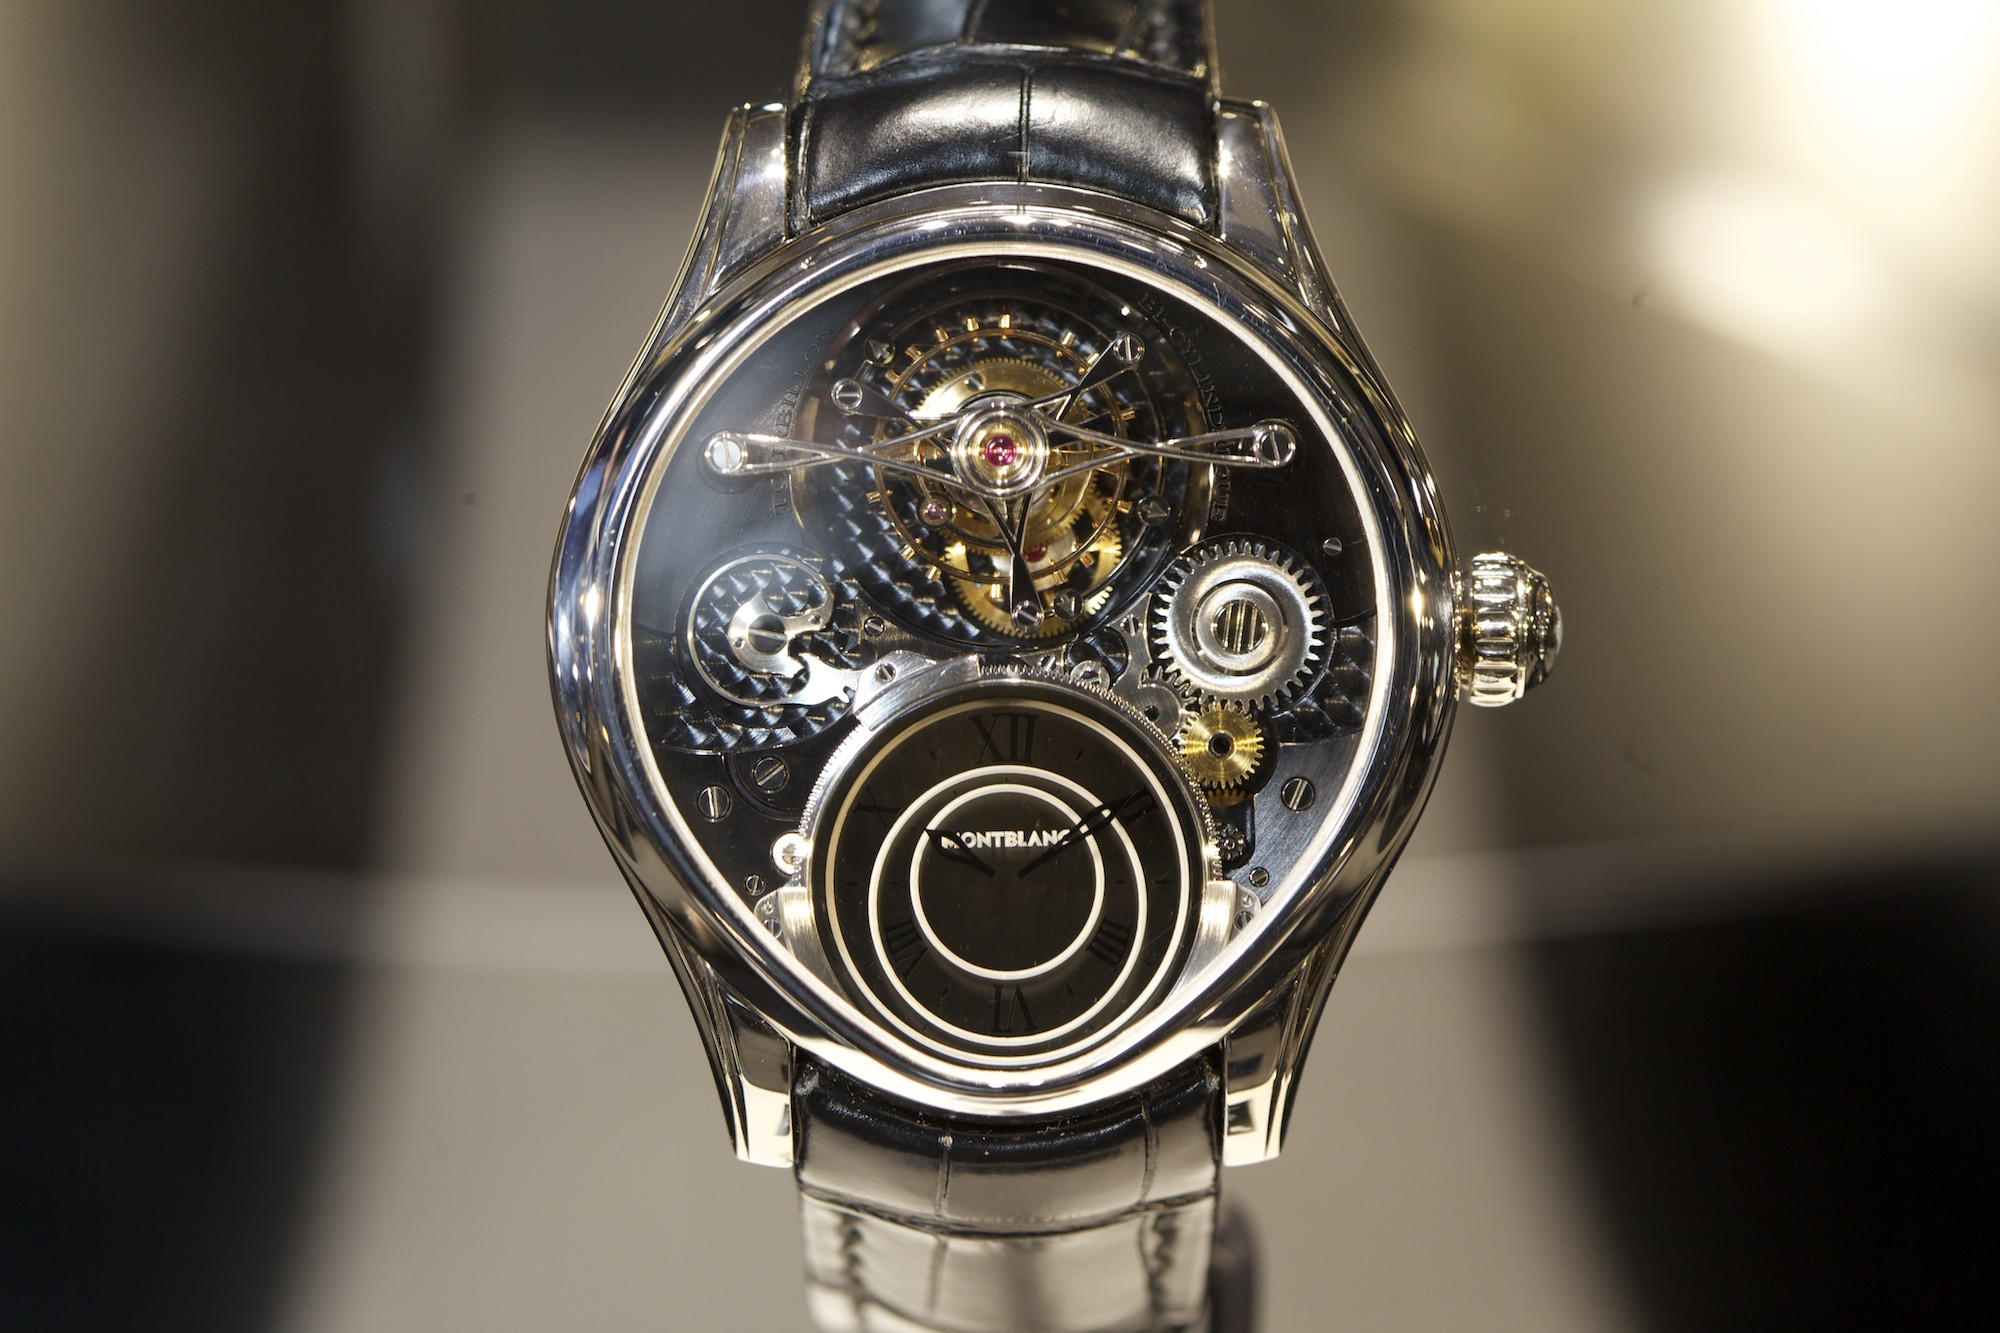 SIHH 2014 Montblanc Villeret Collection 1858 - Tourbillon By-Cylindrique